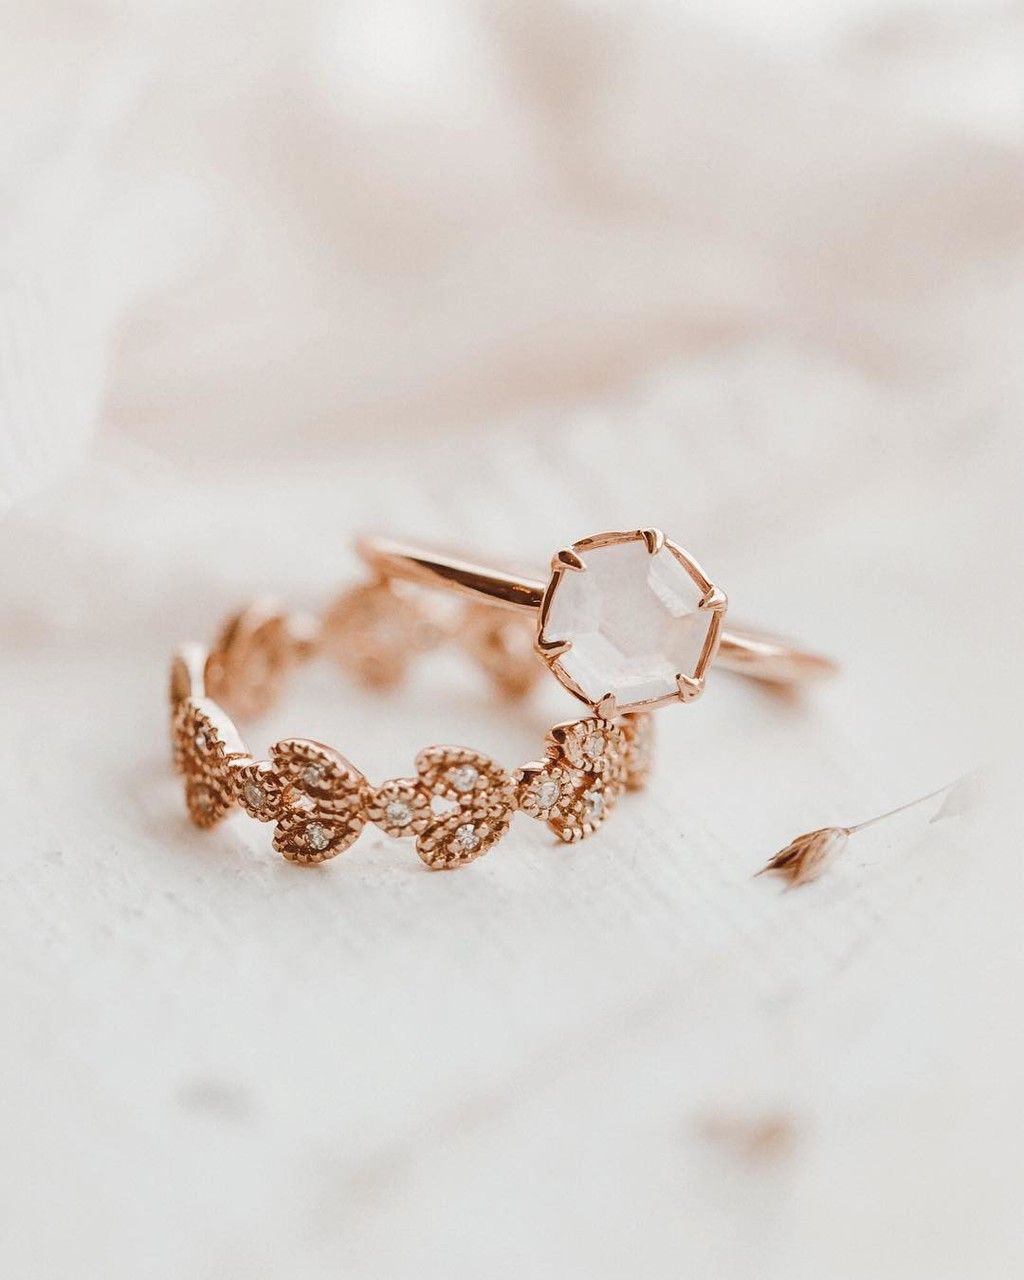 Moonstone + rose gold never get old. ✨ #sarahojewelry